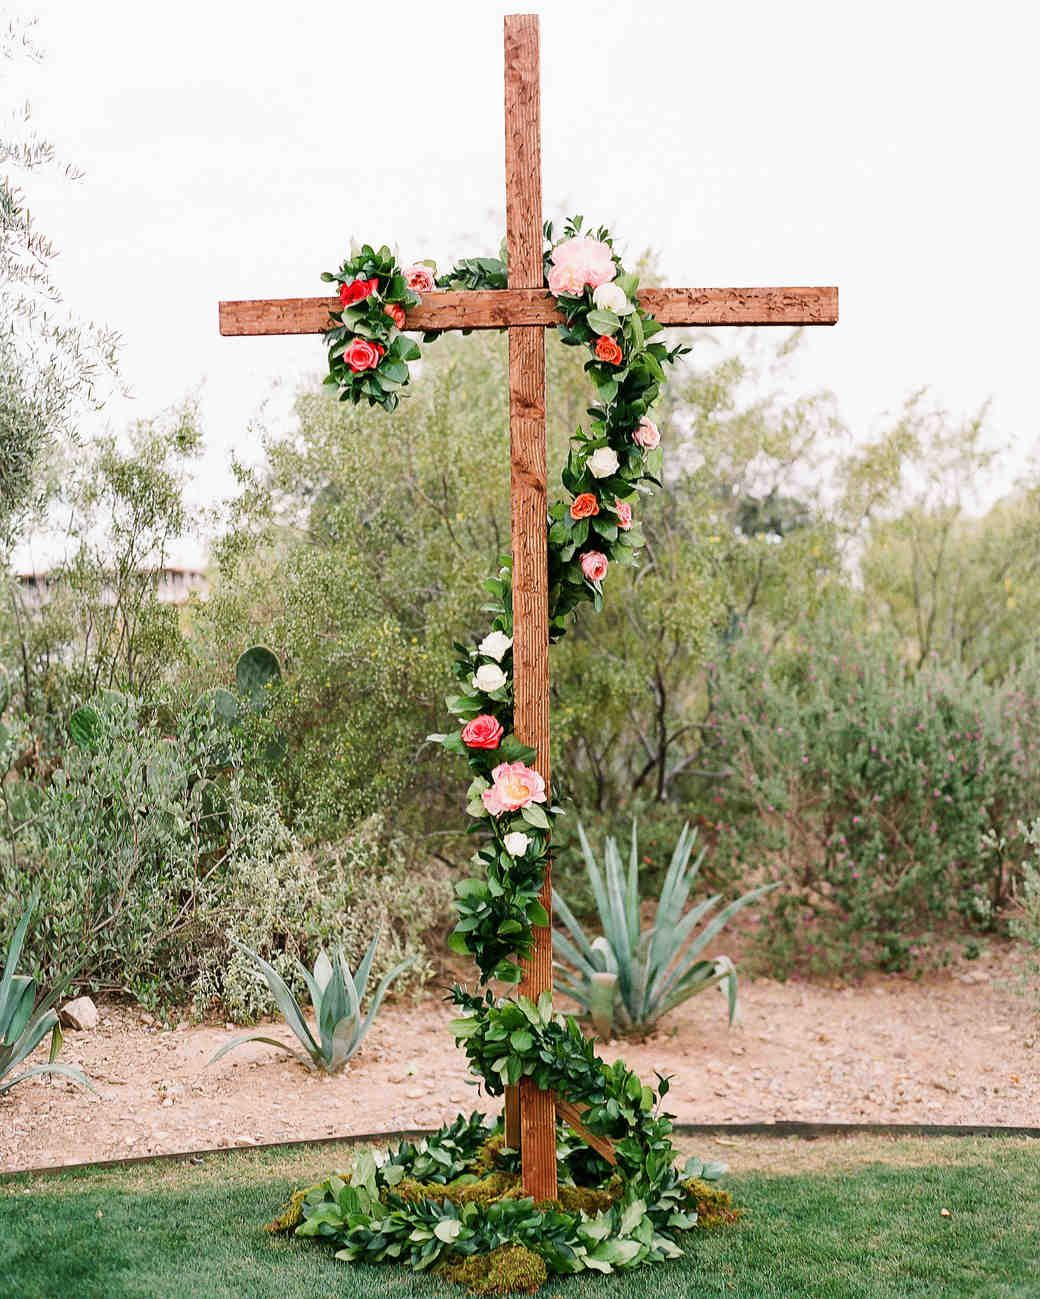 """A Bright Wedding in Arizona with Boho Touches   Martha Stewart Weddings - """"The free-standing cross belonged to a family friend and was the most amazing backdrop to our couple whose relationship grew strong through their faith,"""" Hallie explains of incorporating the structure that was decorated with roses, peonies, and trailing greenery."""